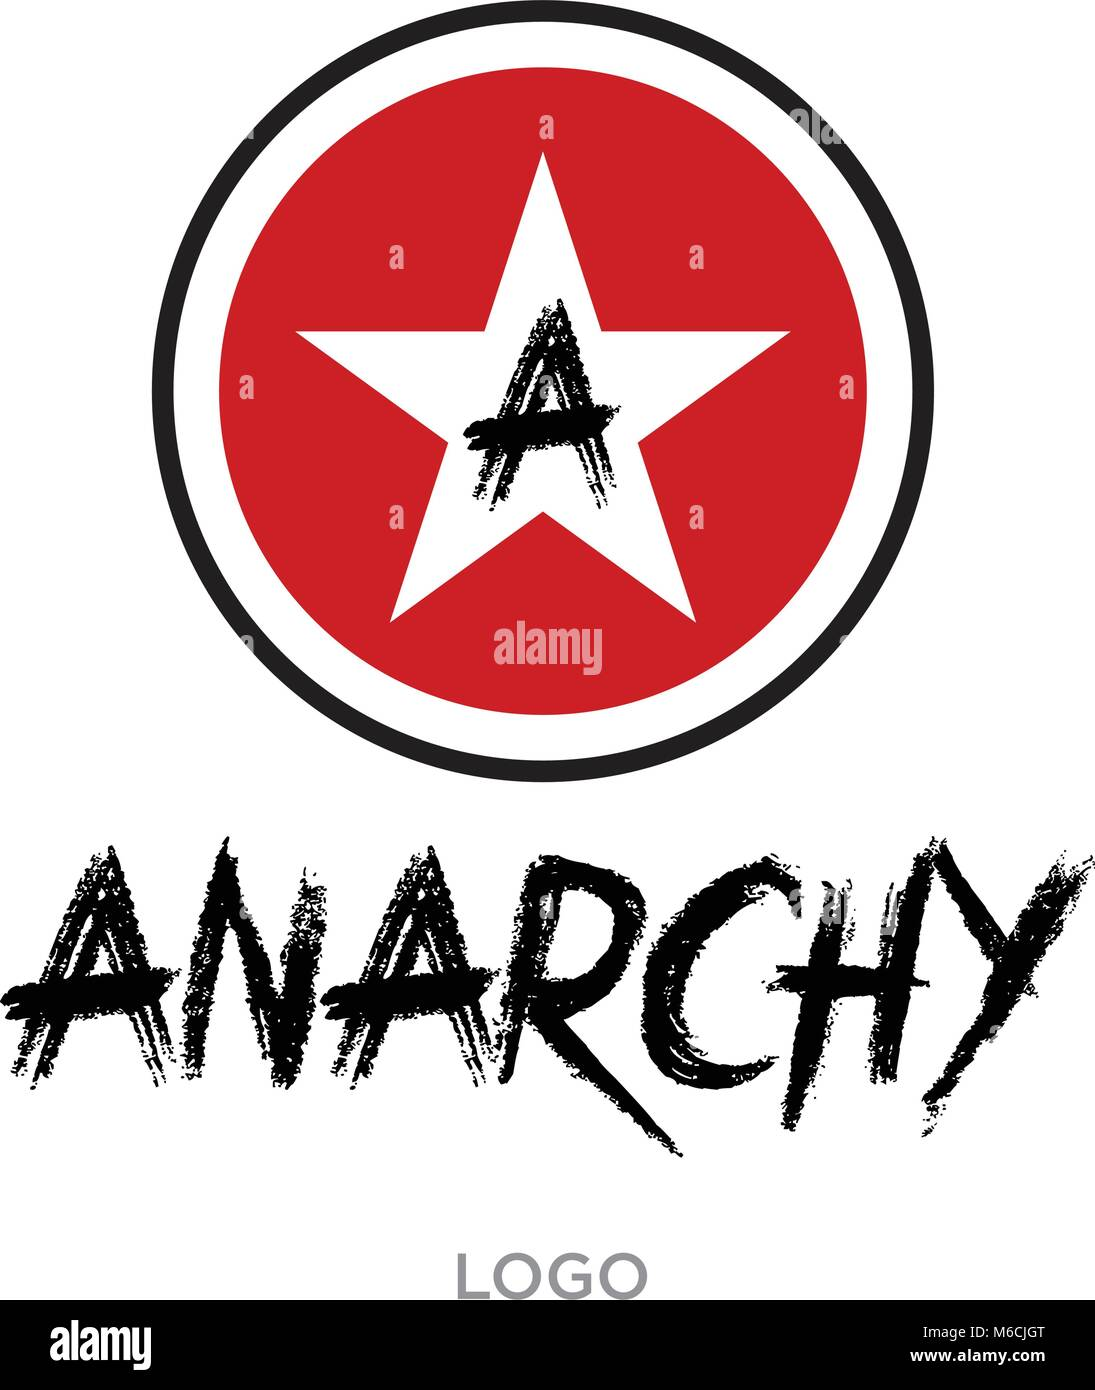 Anarchy sign stock photos anarchy sign stock images alamy anarchy logo sign of disorder and chaos emblem of arbitrariness and lack of state buycottarizona